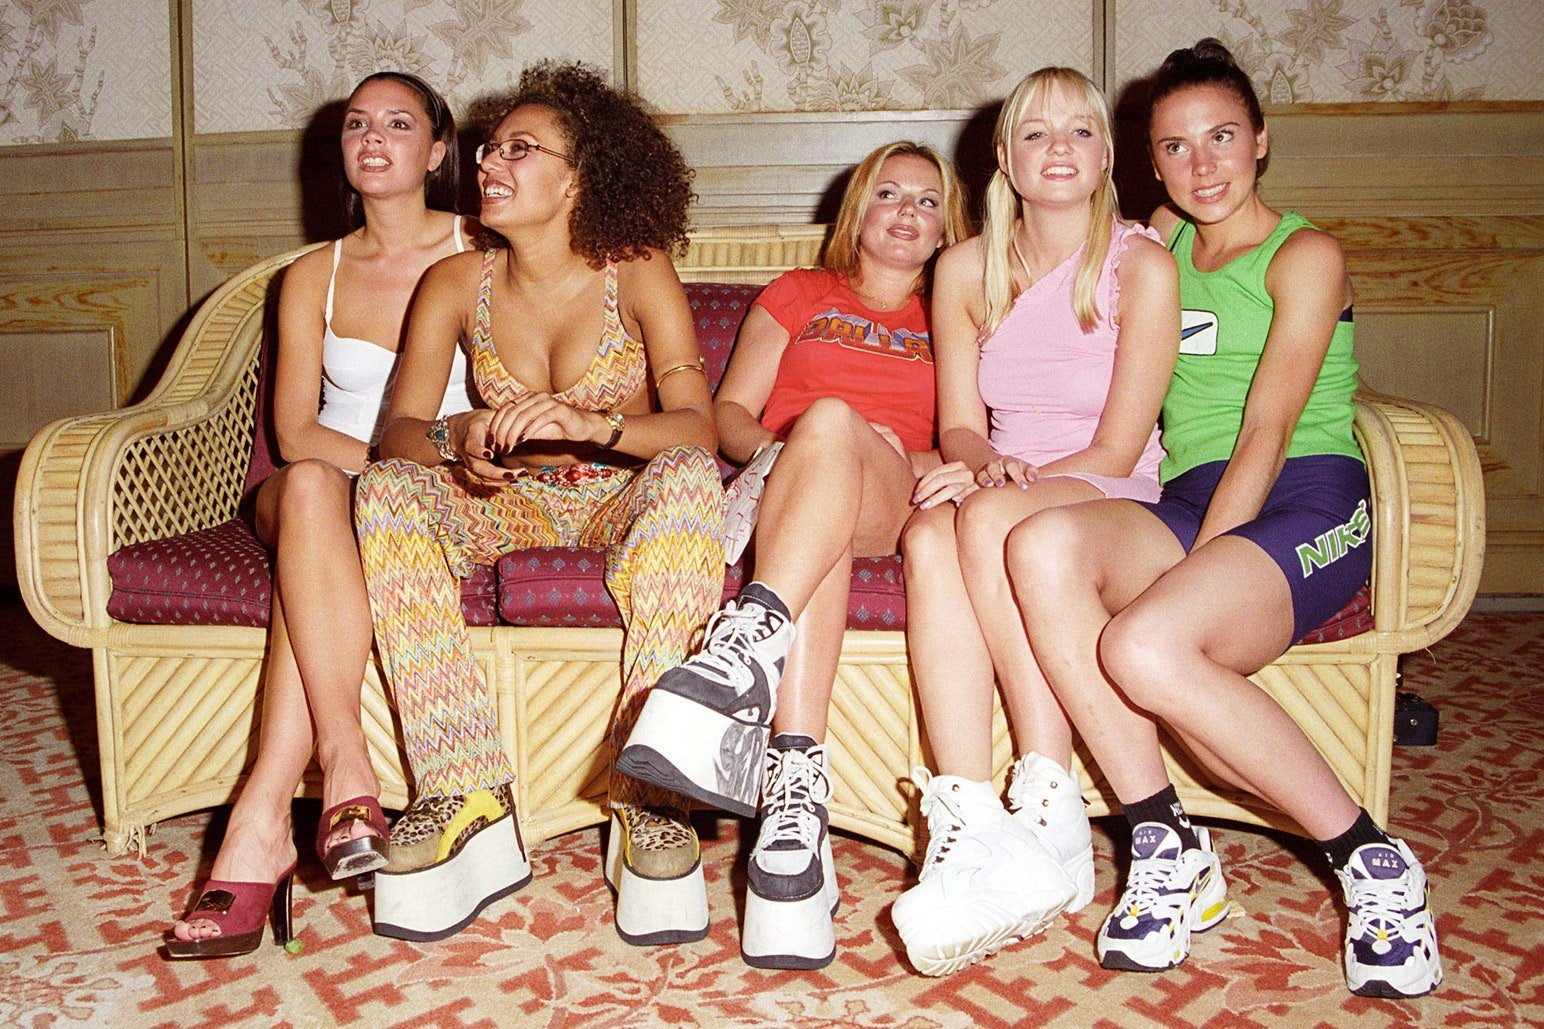 The spice girls sitting on a sofa